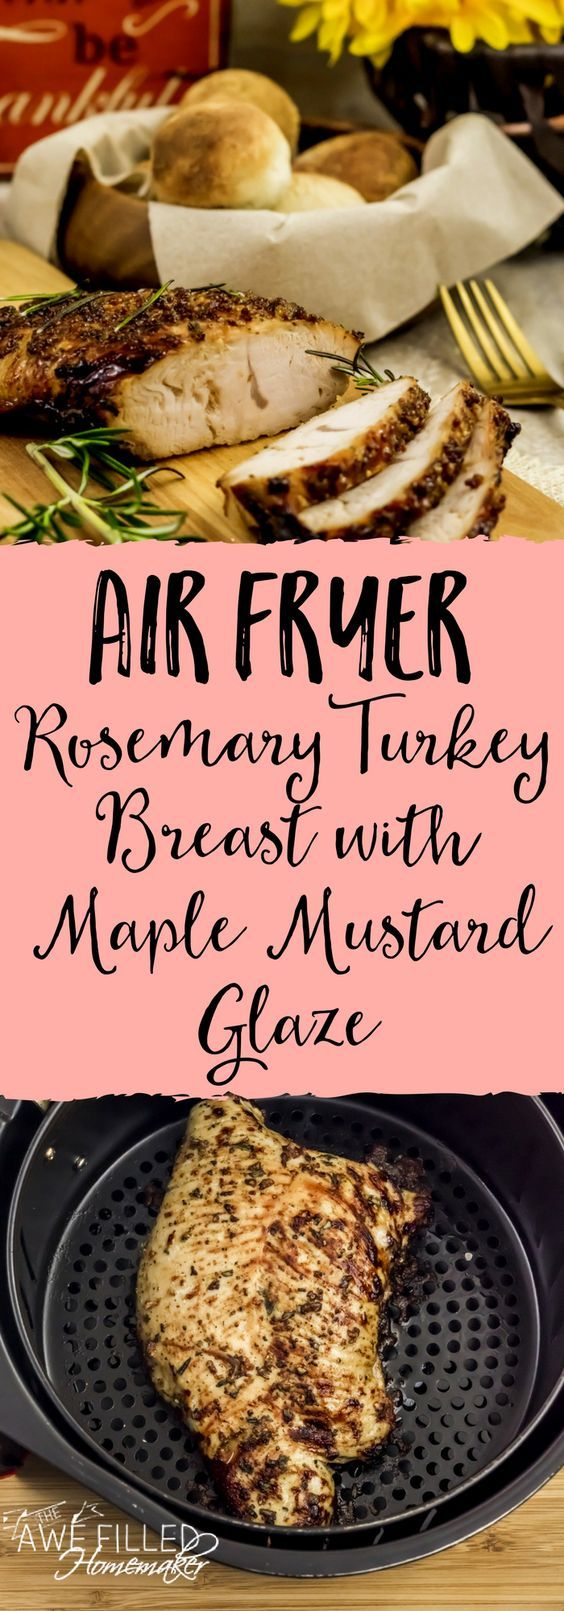 Get ready for the holidays or anytime really with this low carb, high protein Air Fryer Rosemary Turkey Breast with Maple Mustard Glaze recipe! It is perfect! #AirFryer #Turkey #Lowcarb #Paleo #protein via @AFHomemaker